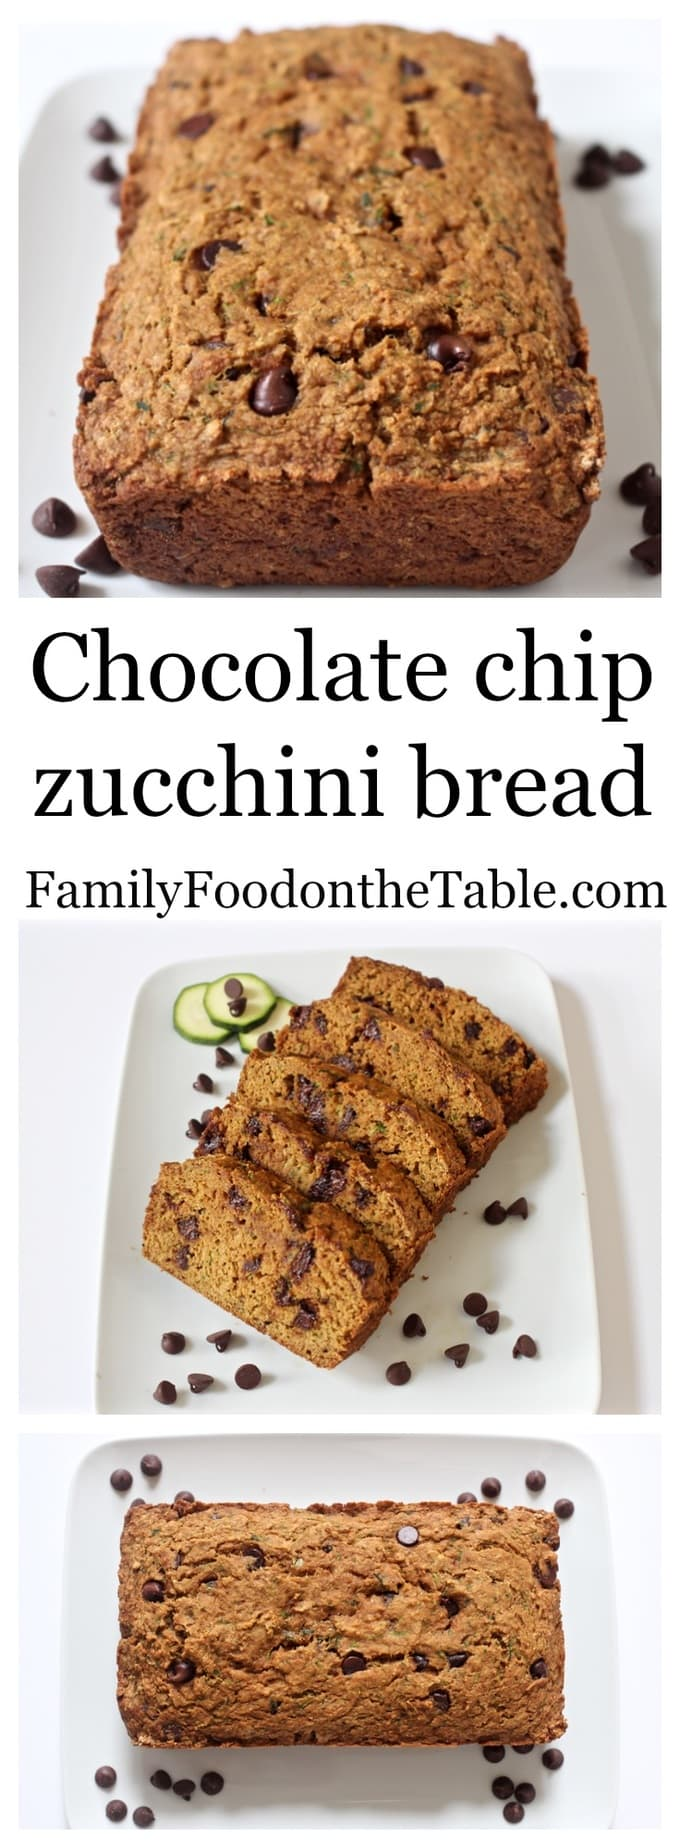 Chocolate chip zucchini bread photo collage